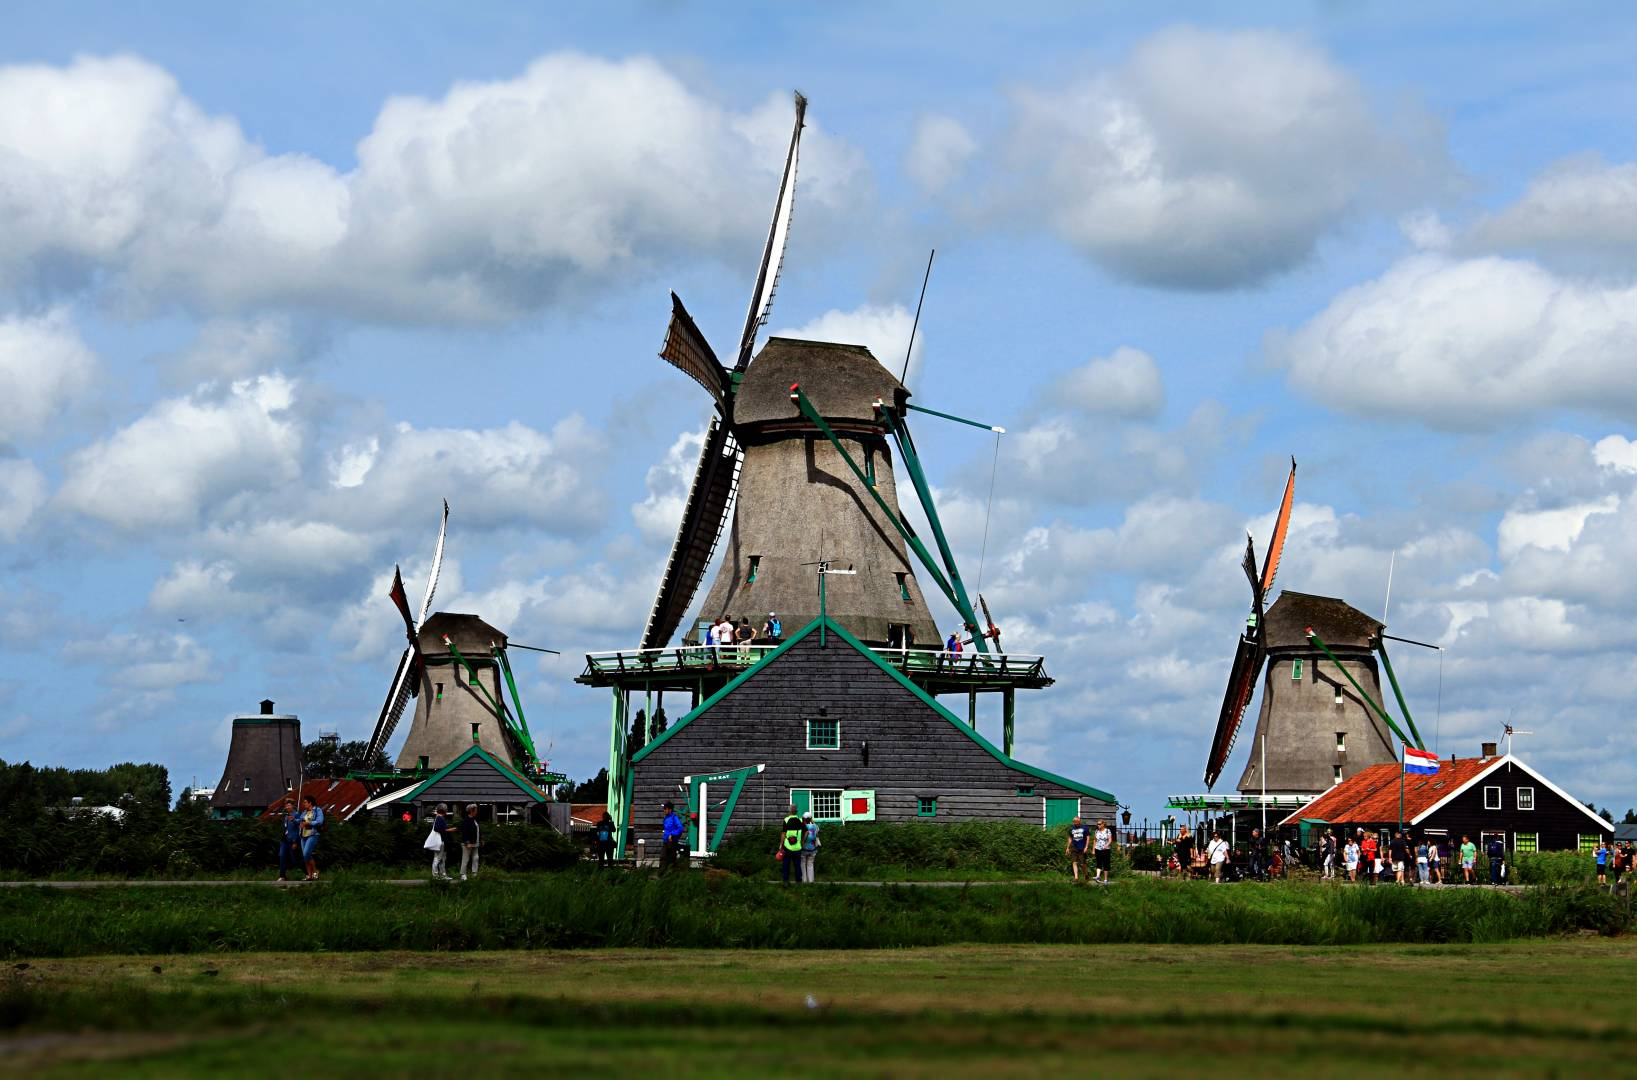 Holland Trip Photo Diary: Day 5 - Zaanse Schans